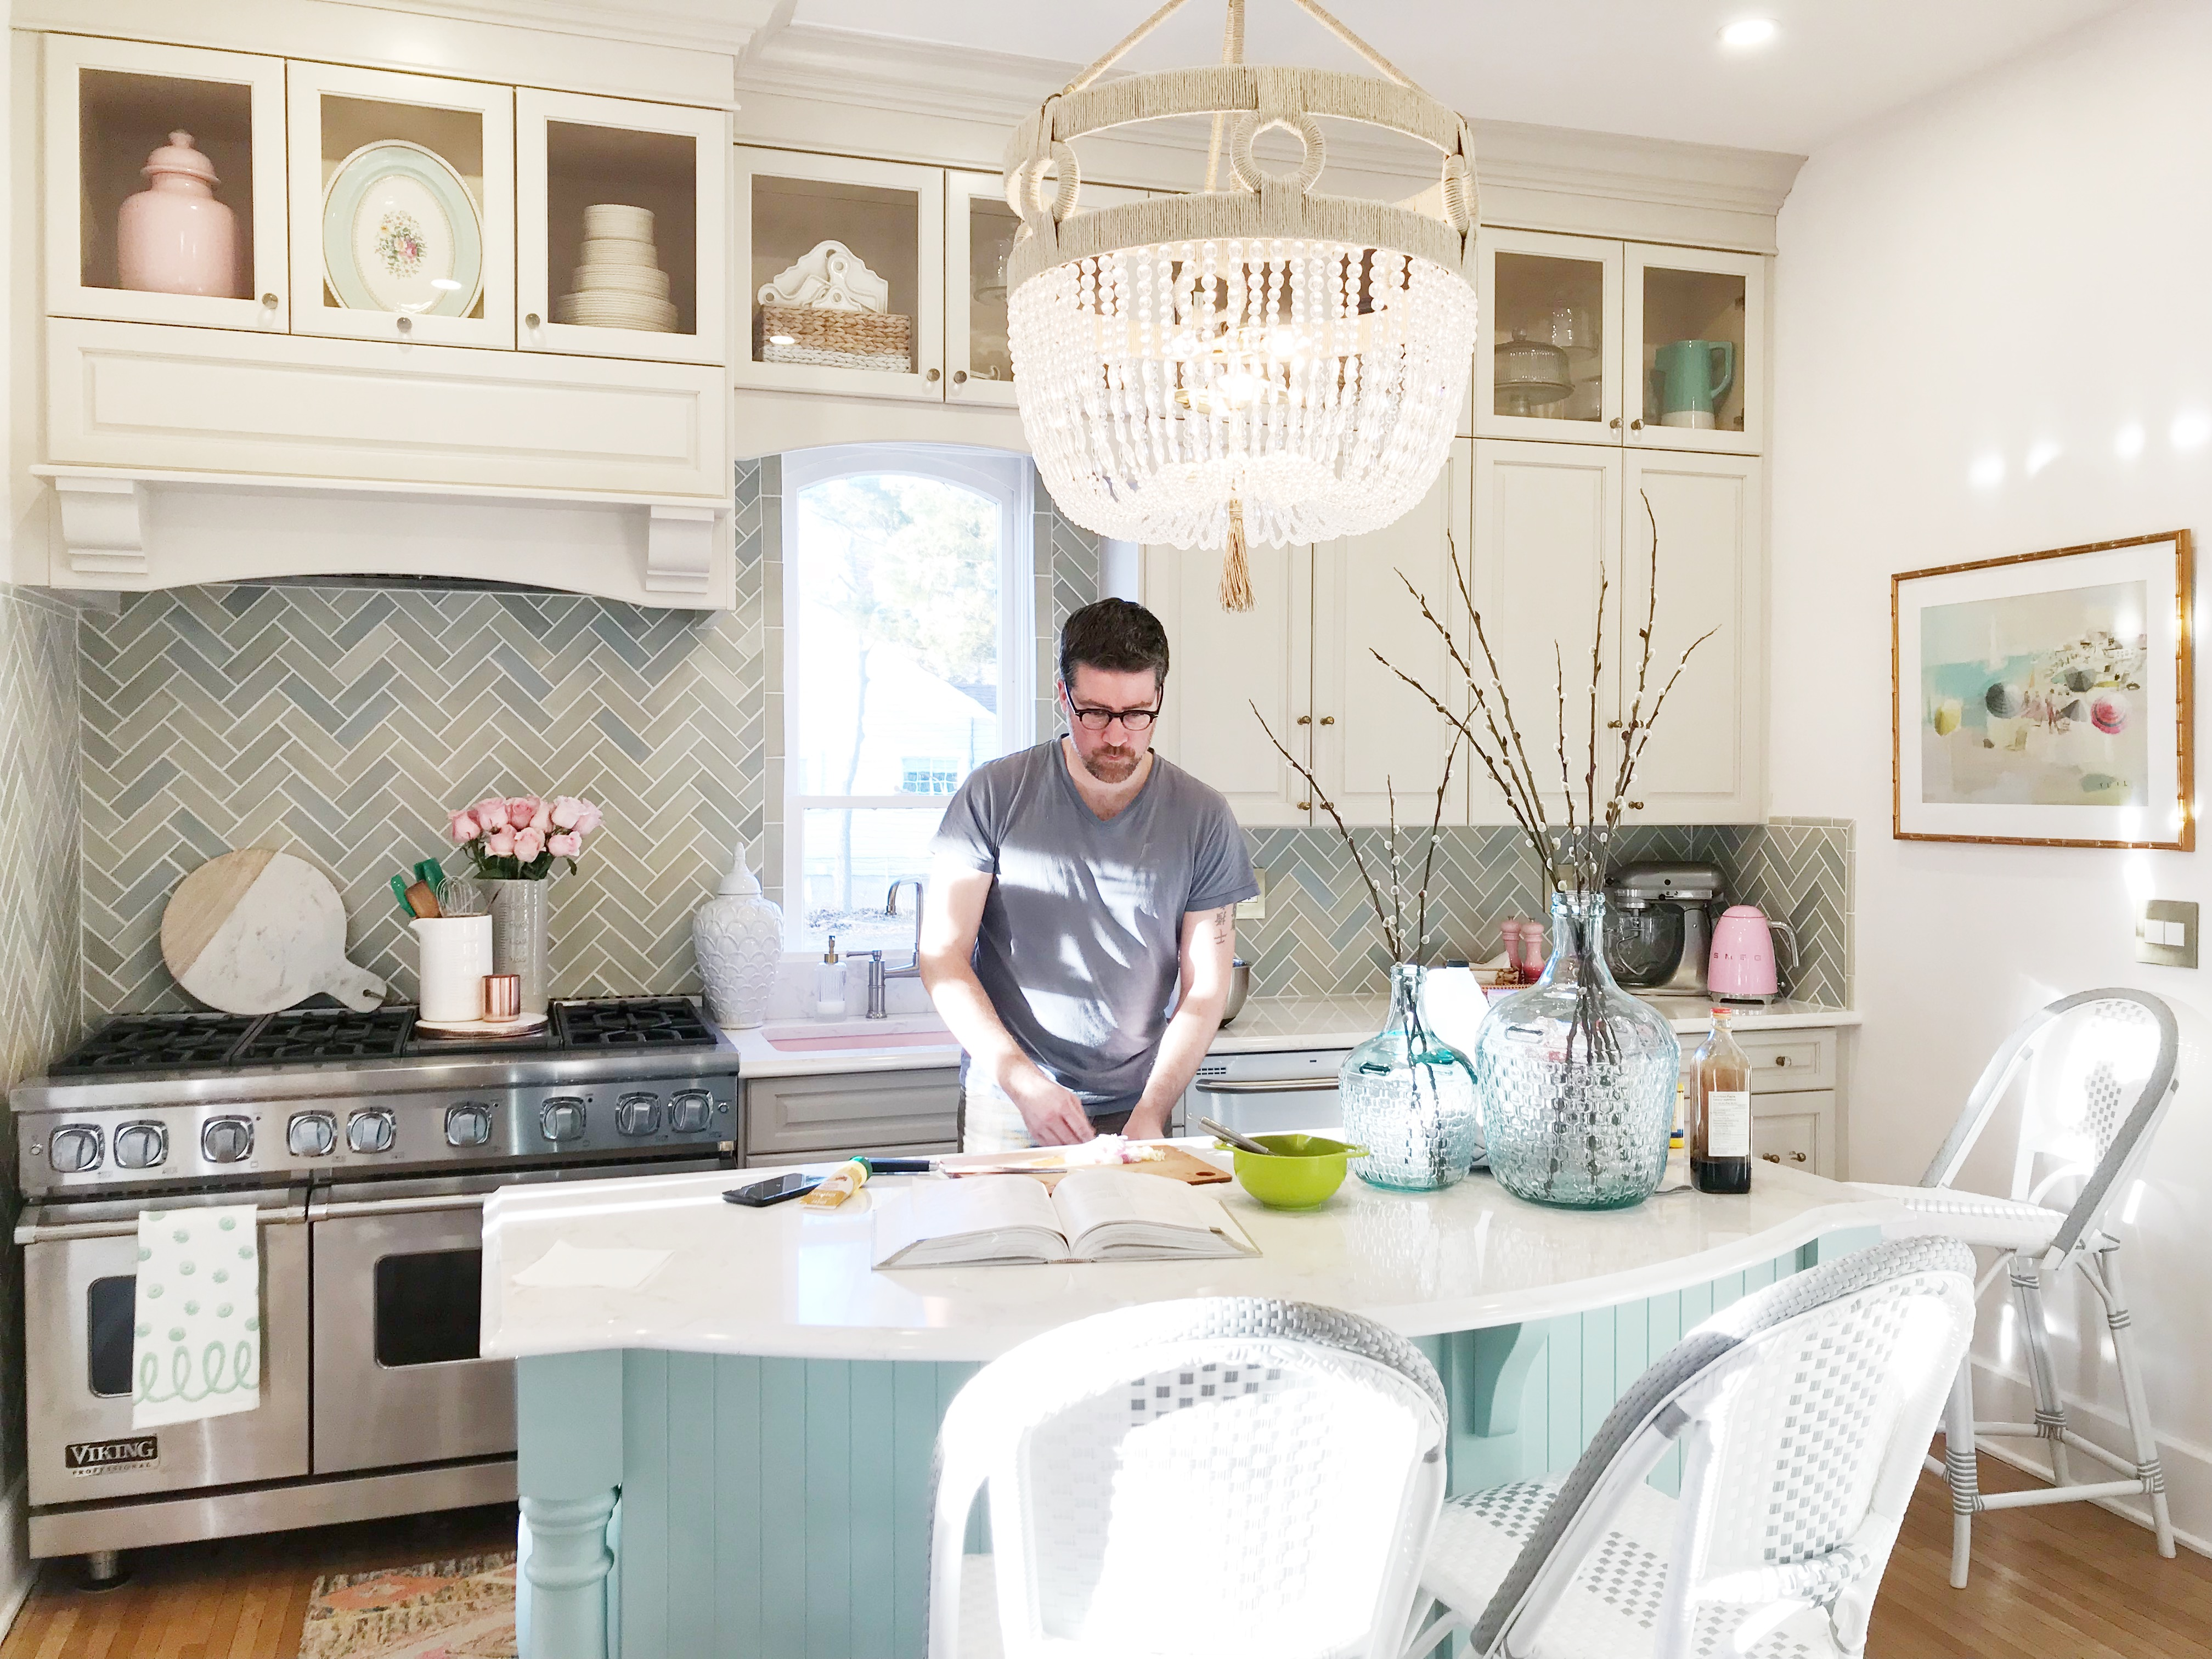 spring kitchen accessories the leslie style green kitchen chandelier - Spring Kitchen